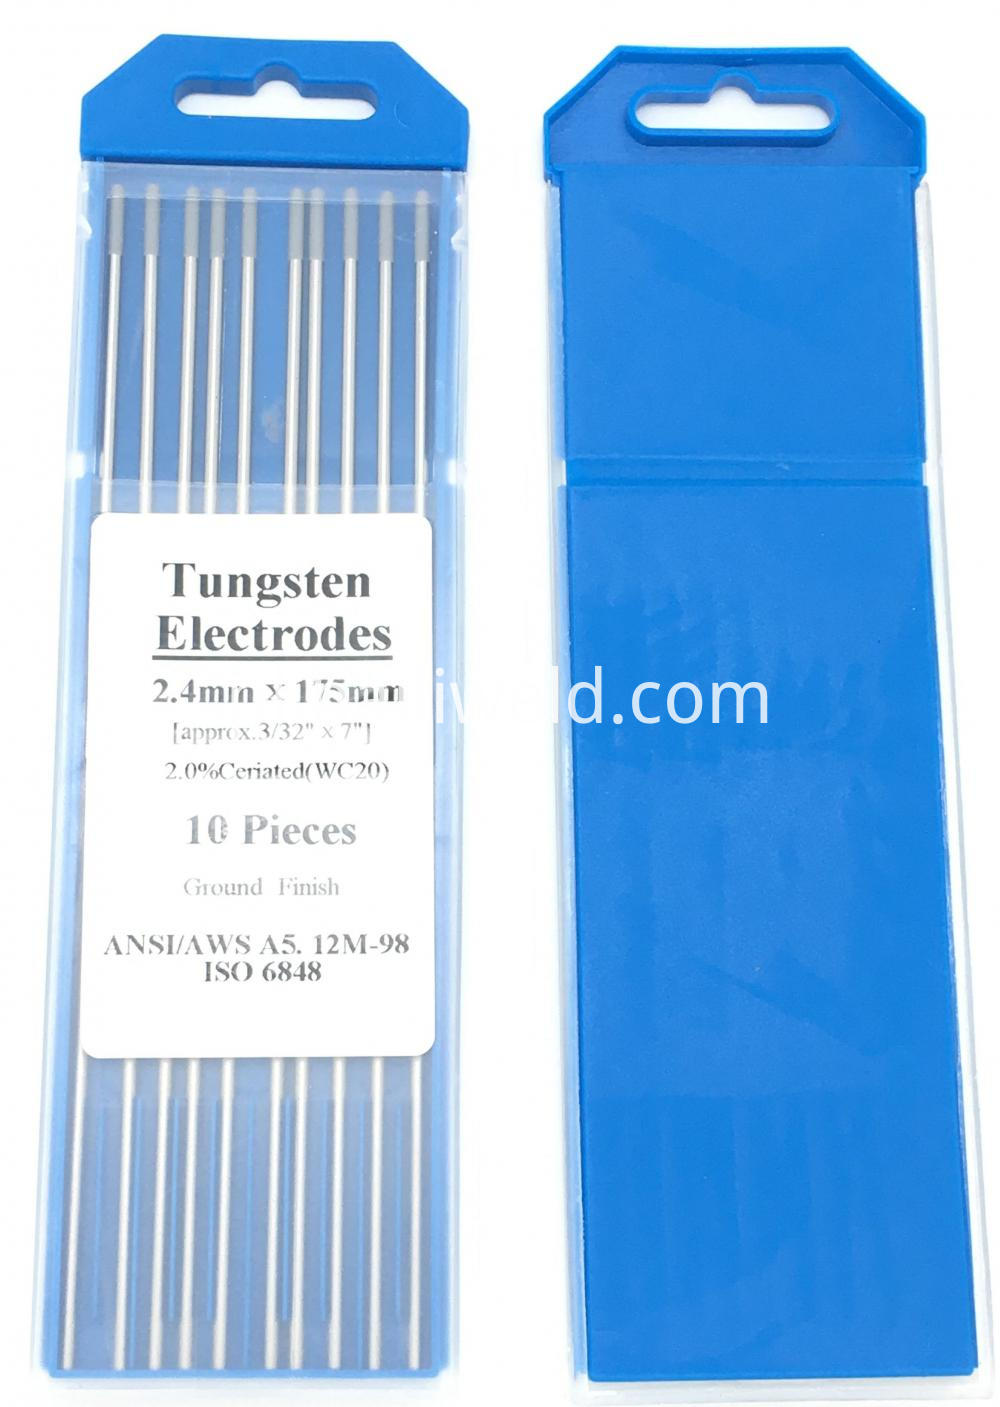 Wc20 Cerium Tungsten Electrode 2 4mmx175mm